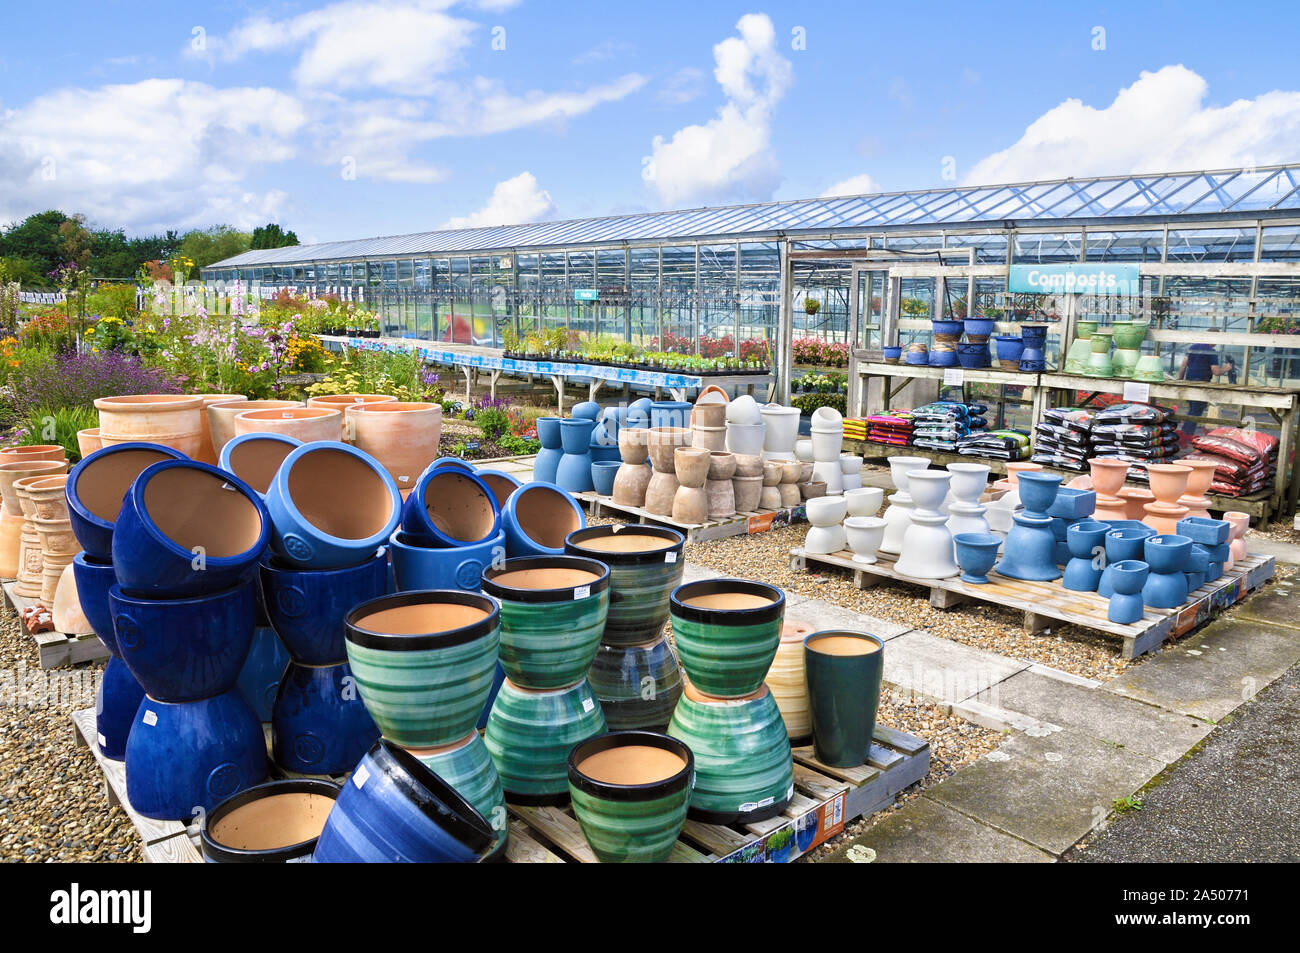 A variety of ceramic and terracotta plant pots stacked at a garden nursery, UK Stock Photo